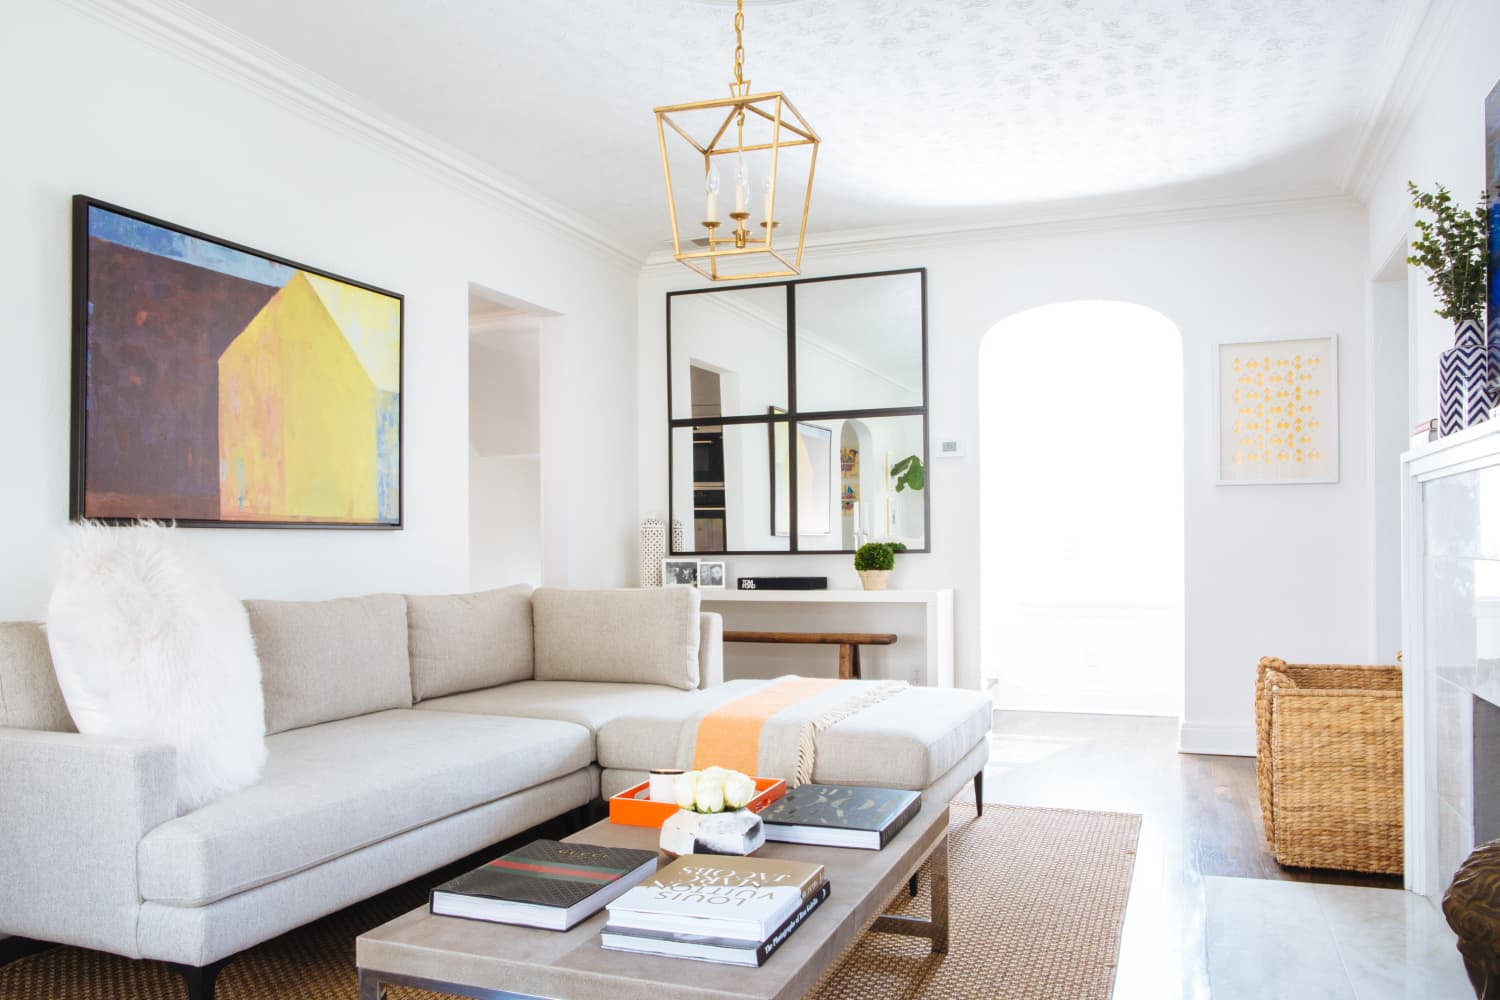 How to Get a High-End Living Room Look on a Real-Life Budget